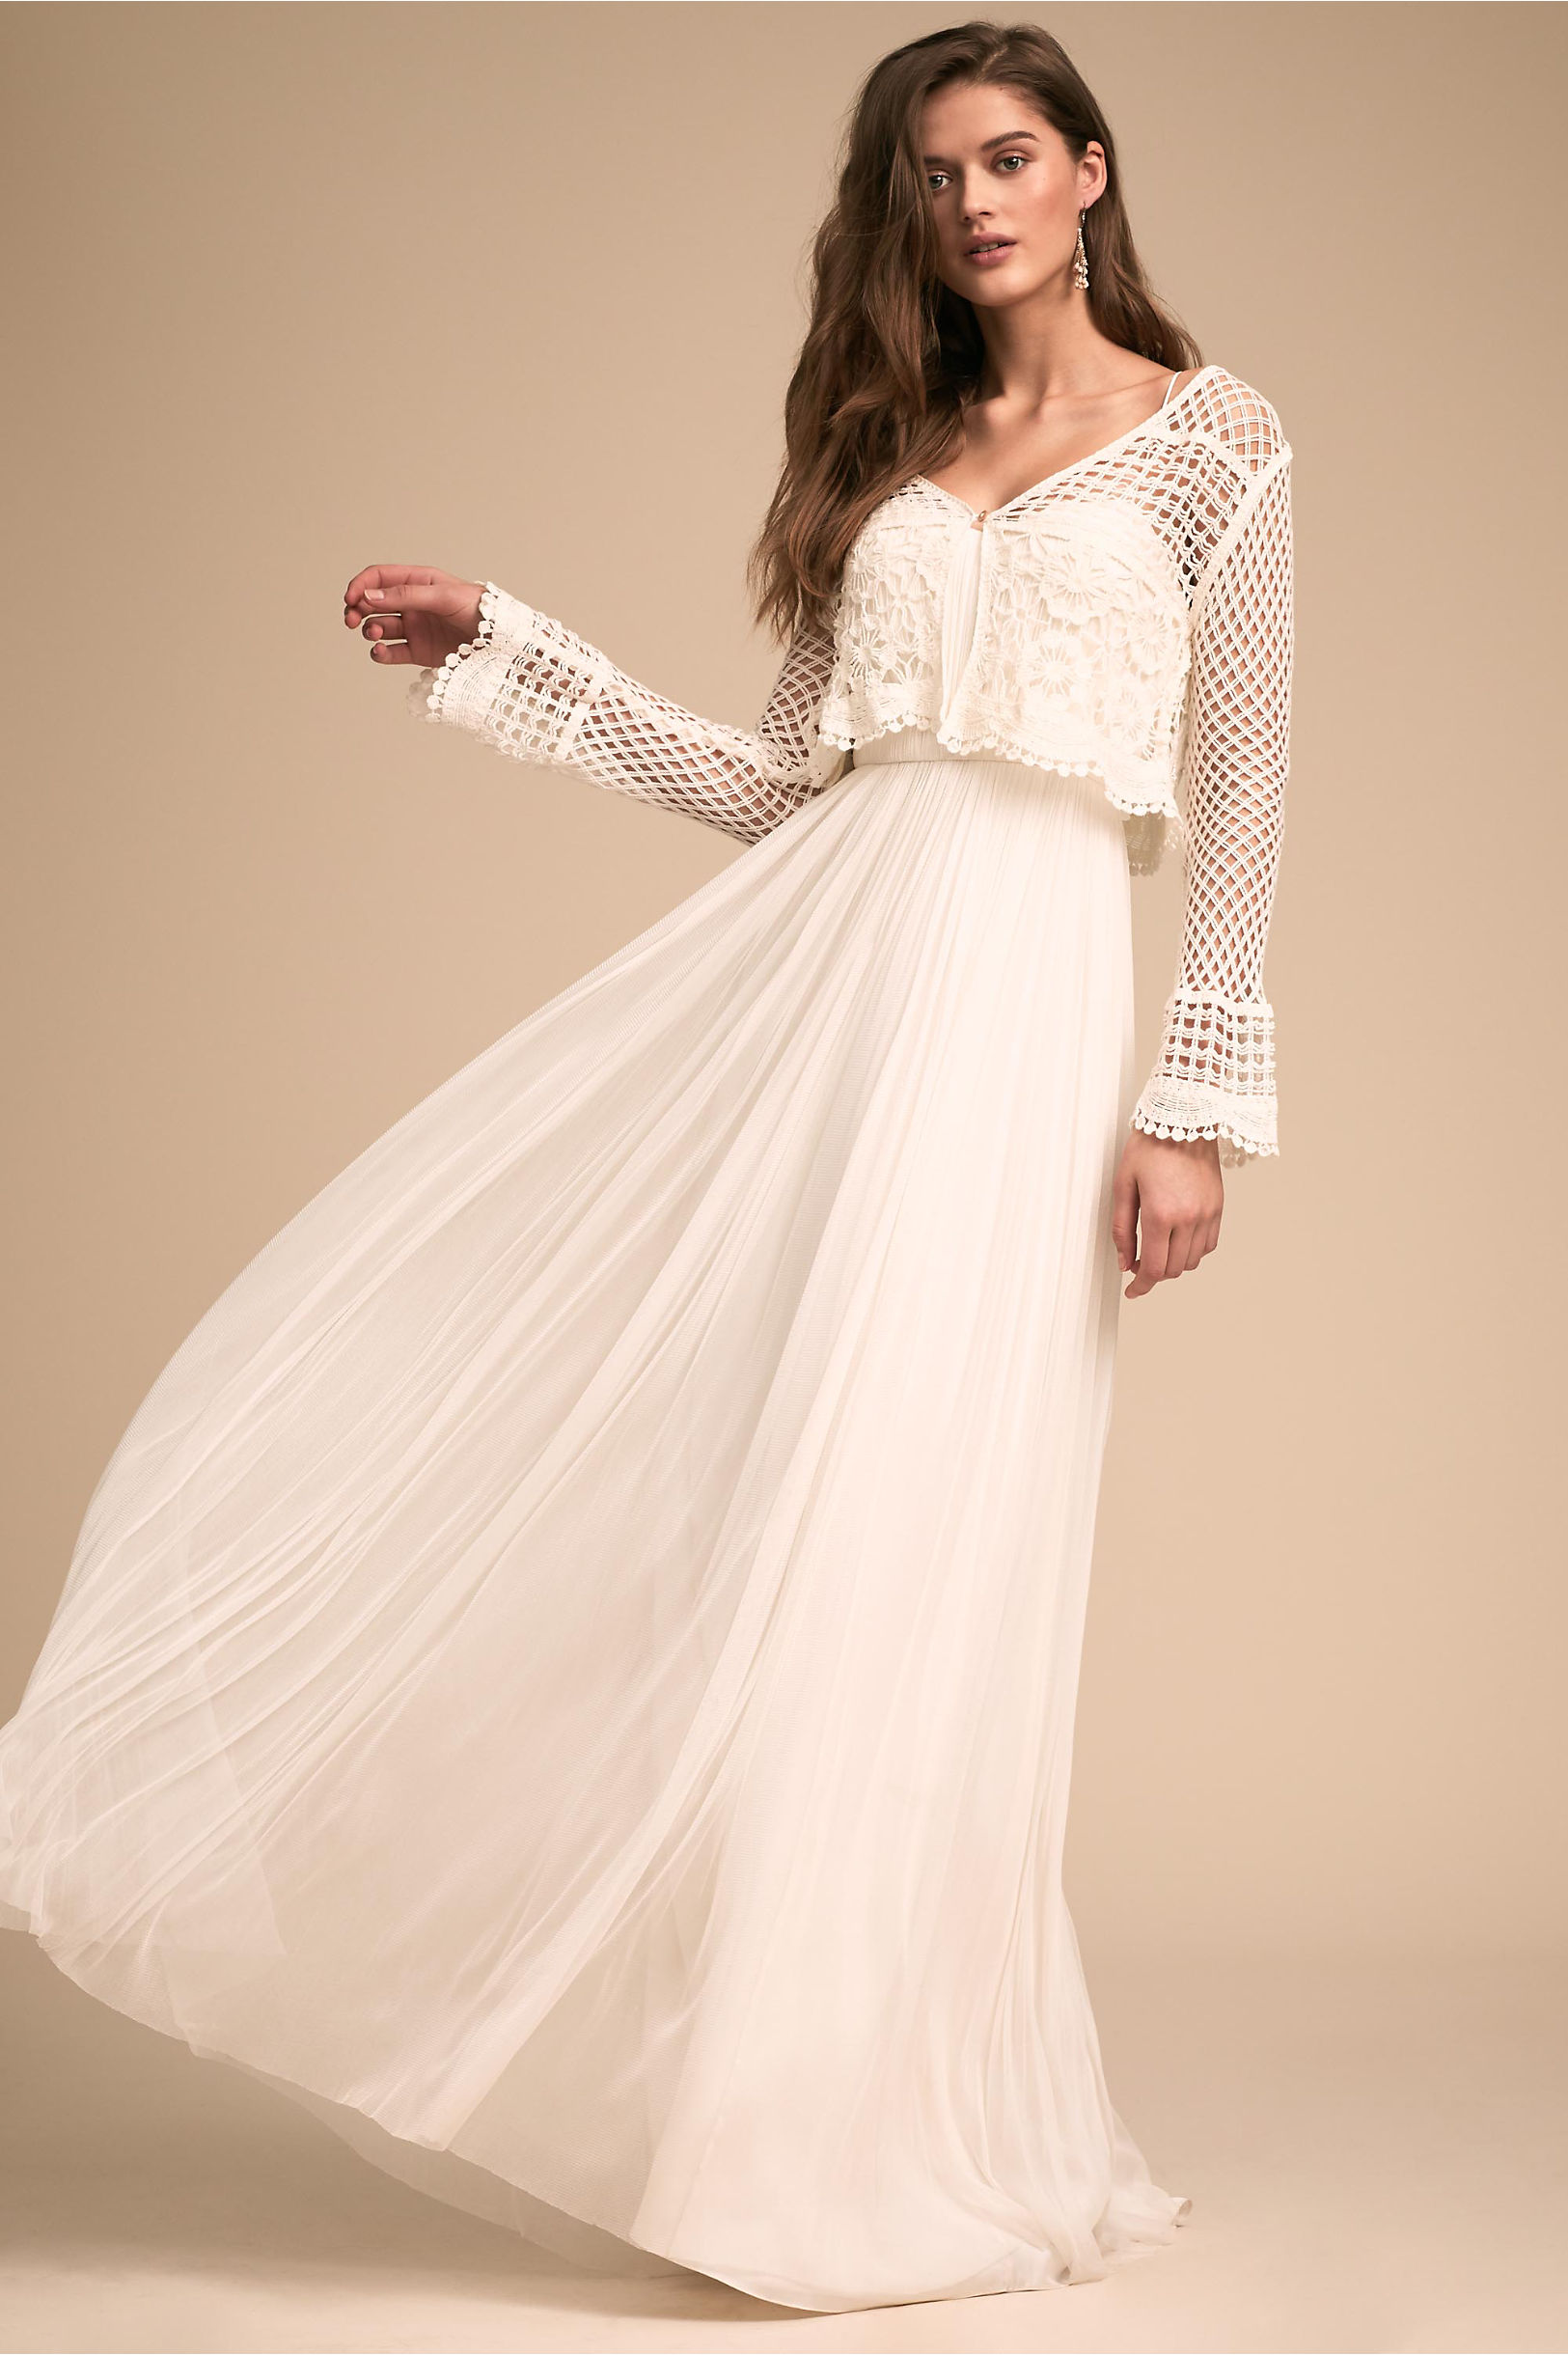 For Formal Wedding Dress with Cardigan